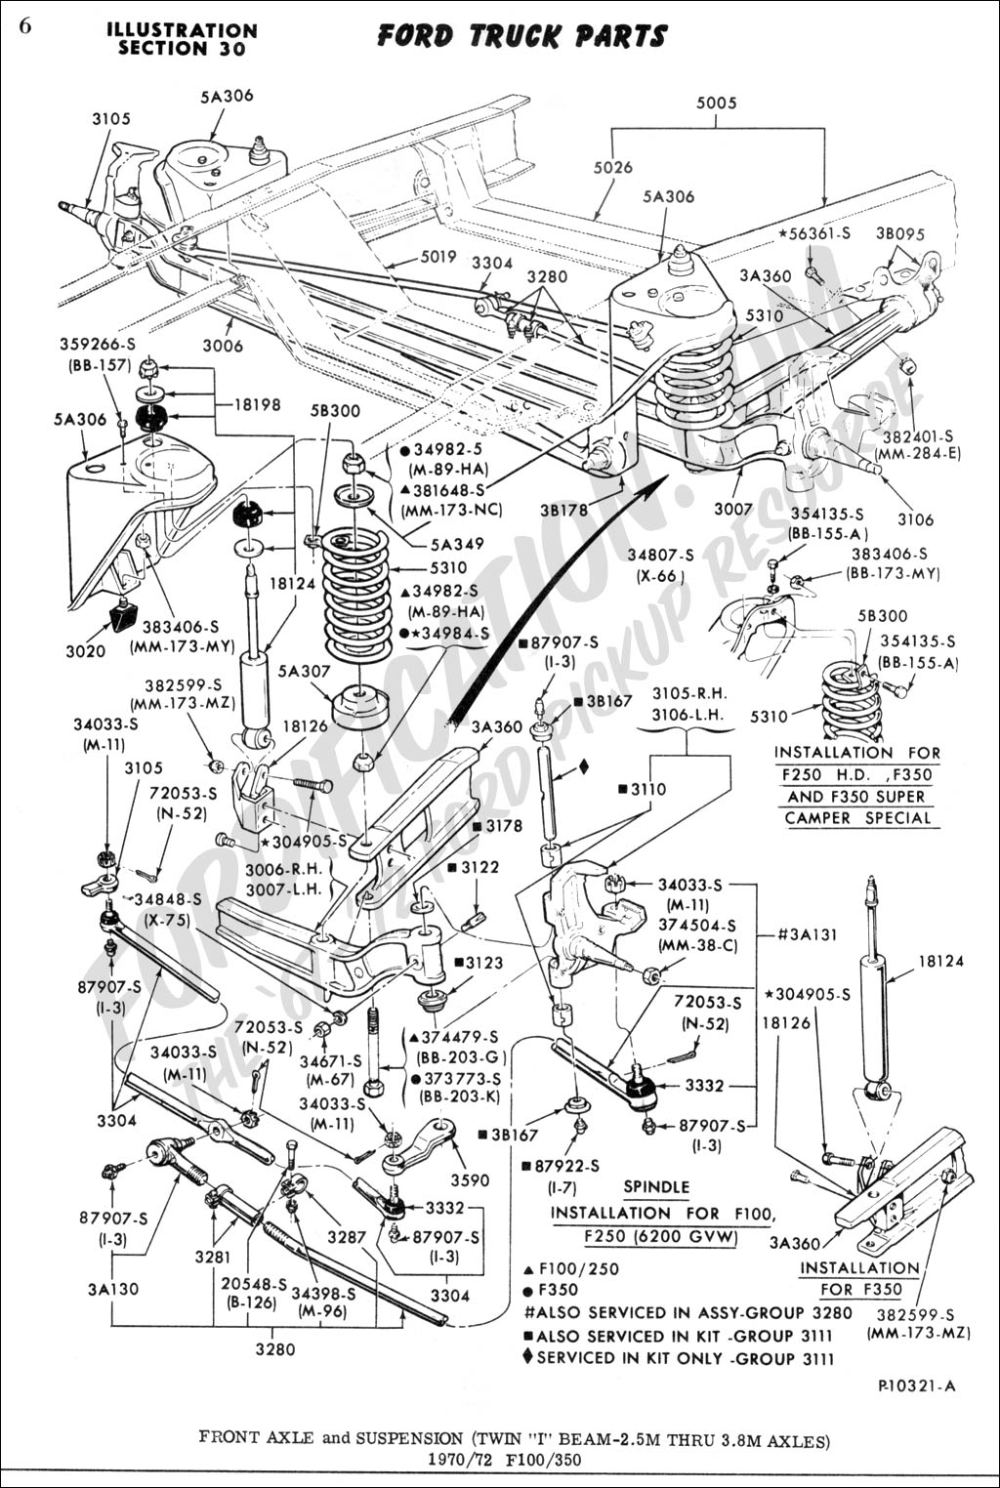 medium resolution of 2002 ford f250 steering diagram wiring diagram inside 2001 ford f350 steering column diagram 2001 f350 steering diagram